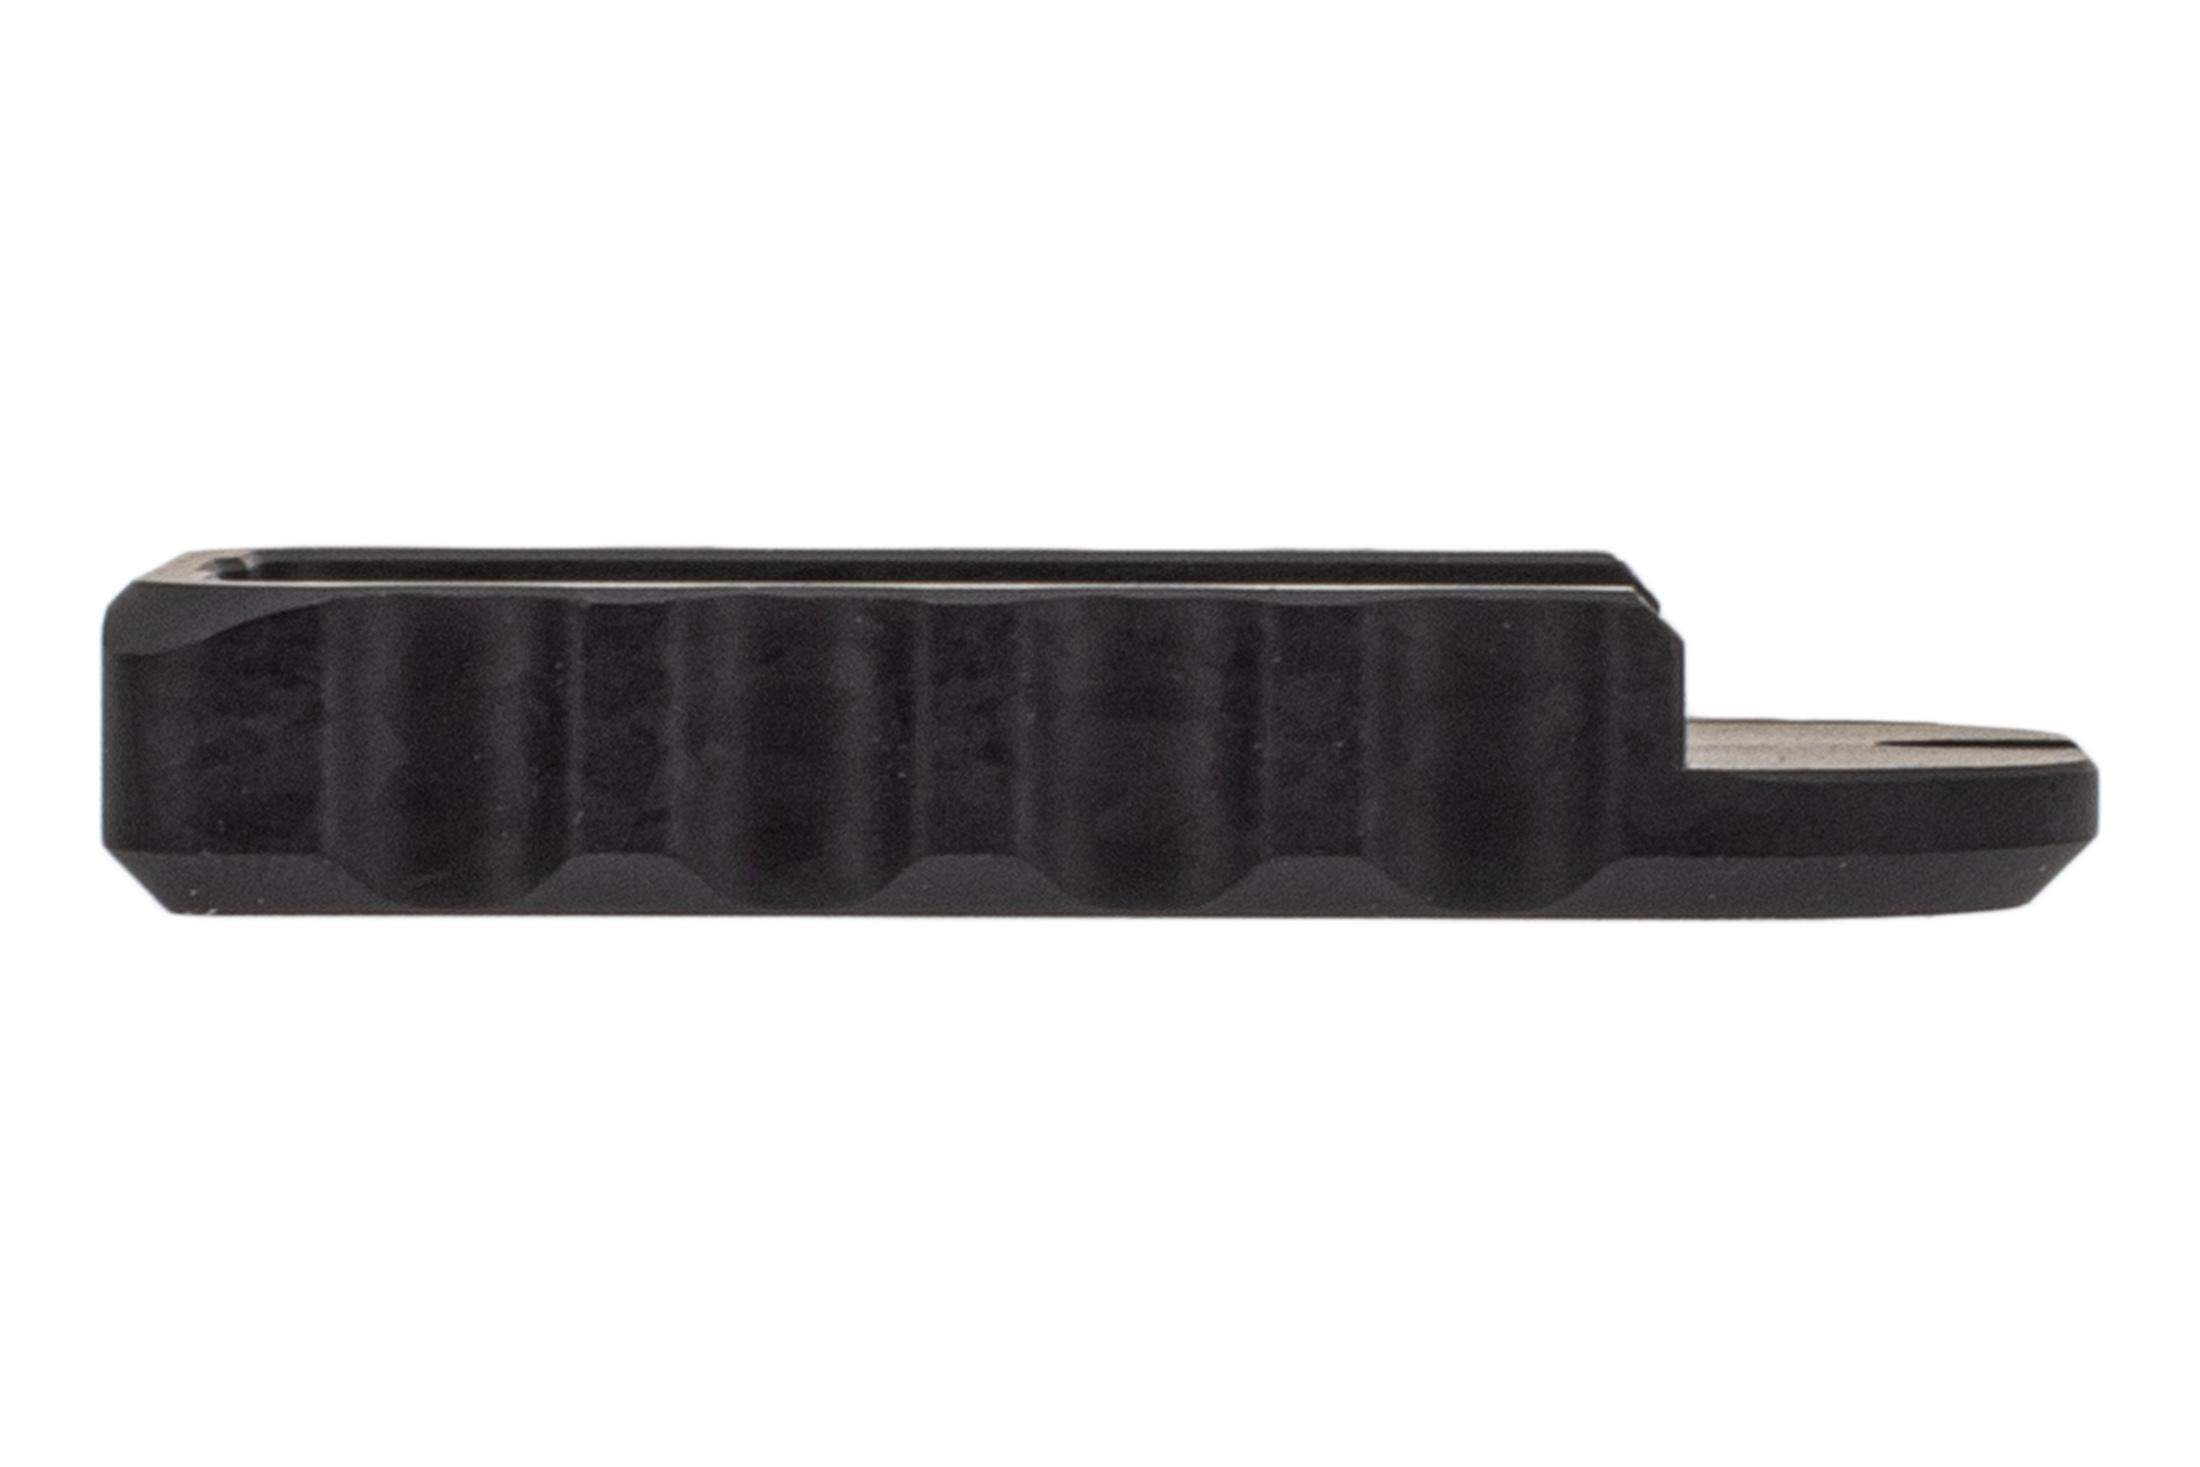 SLR Rifleworks black anodized Glock magazine floor plate is compatible with Magpul magazines for Glock handguns